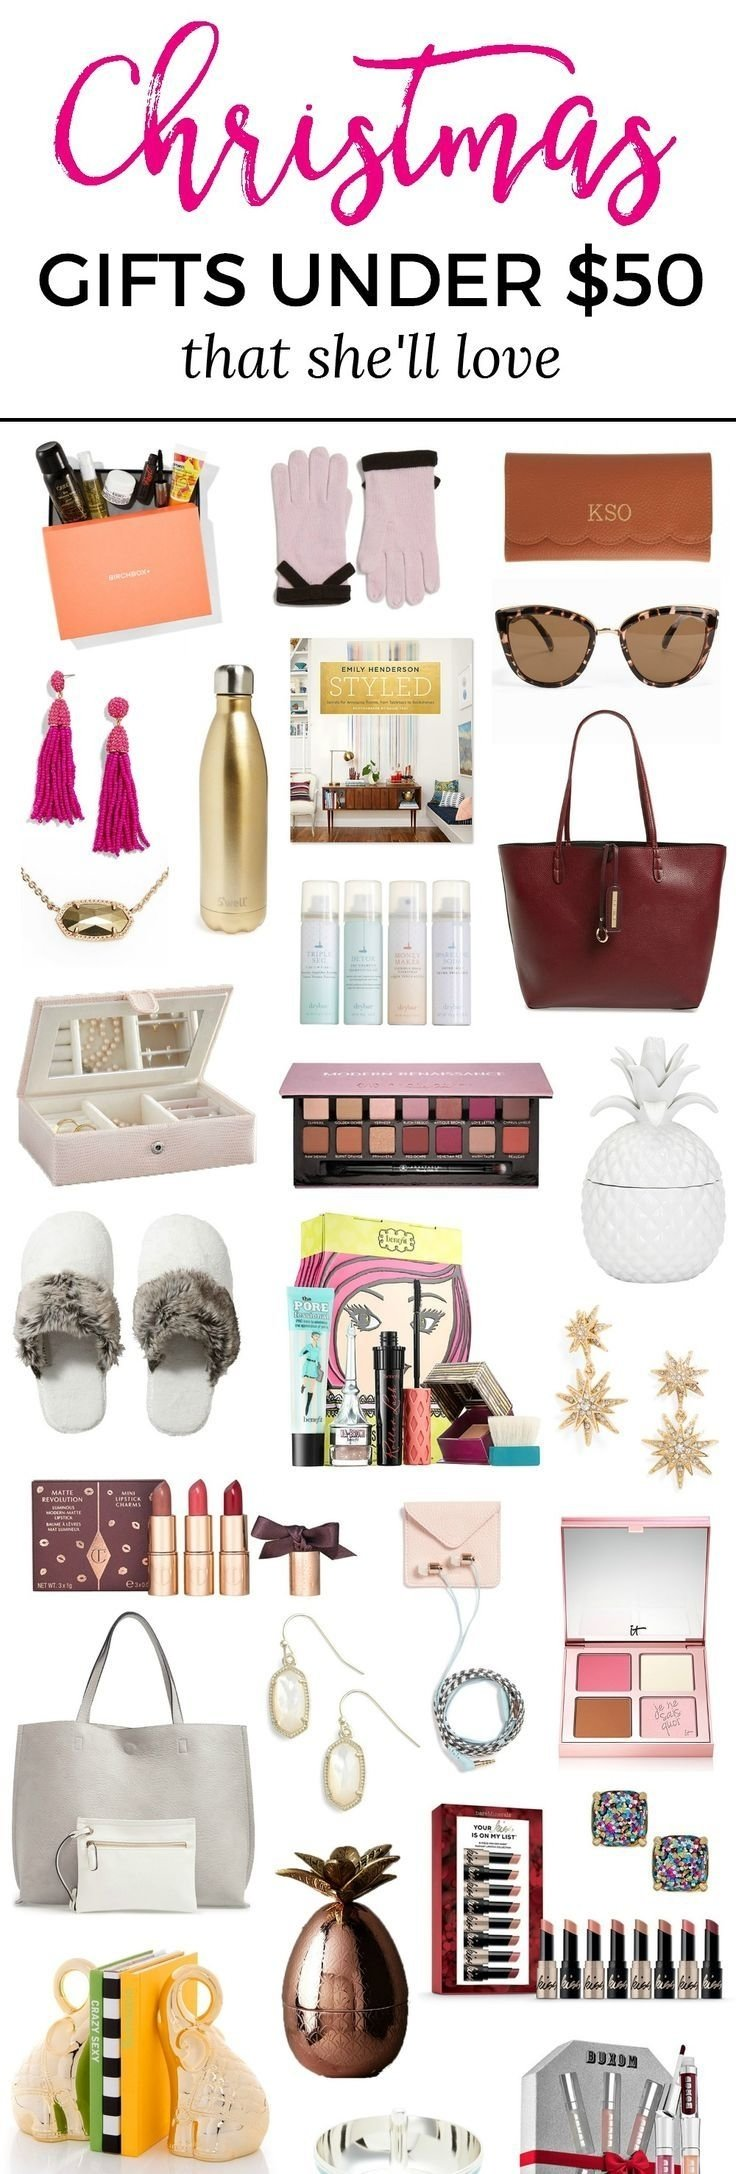 10 Gorgeous Christmas Gift Ideas For Wives the best christmas gift ideas for women under 50 ashley brooke 3 2020